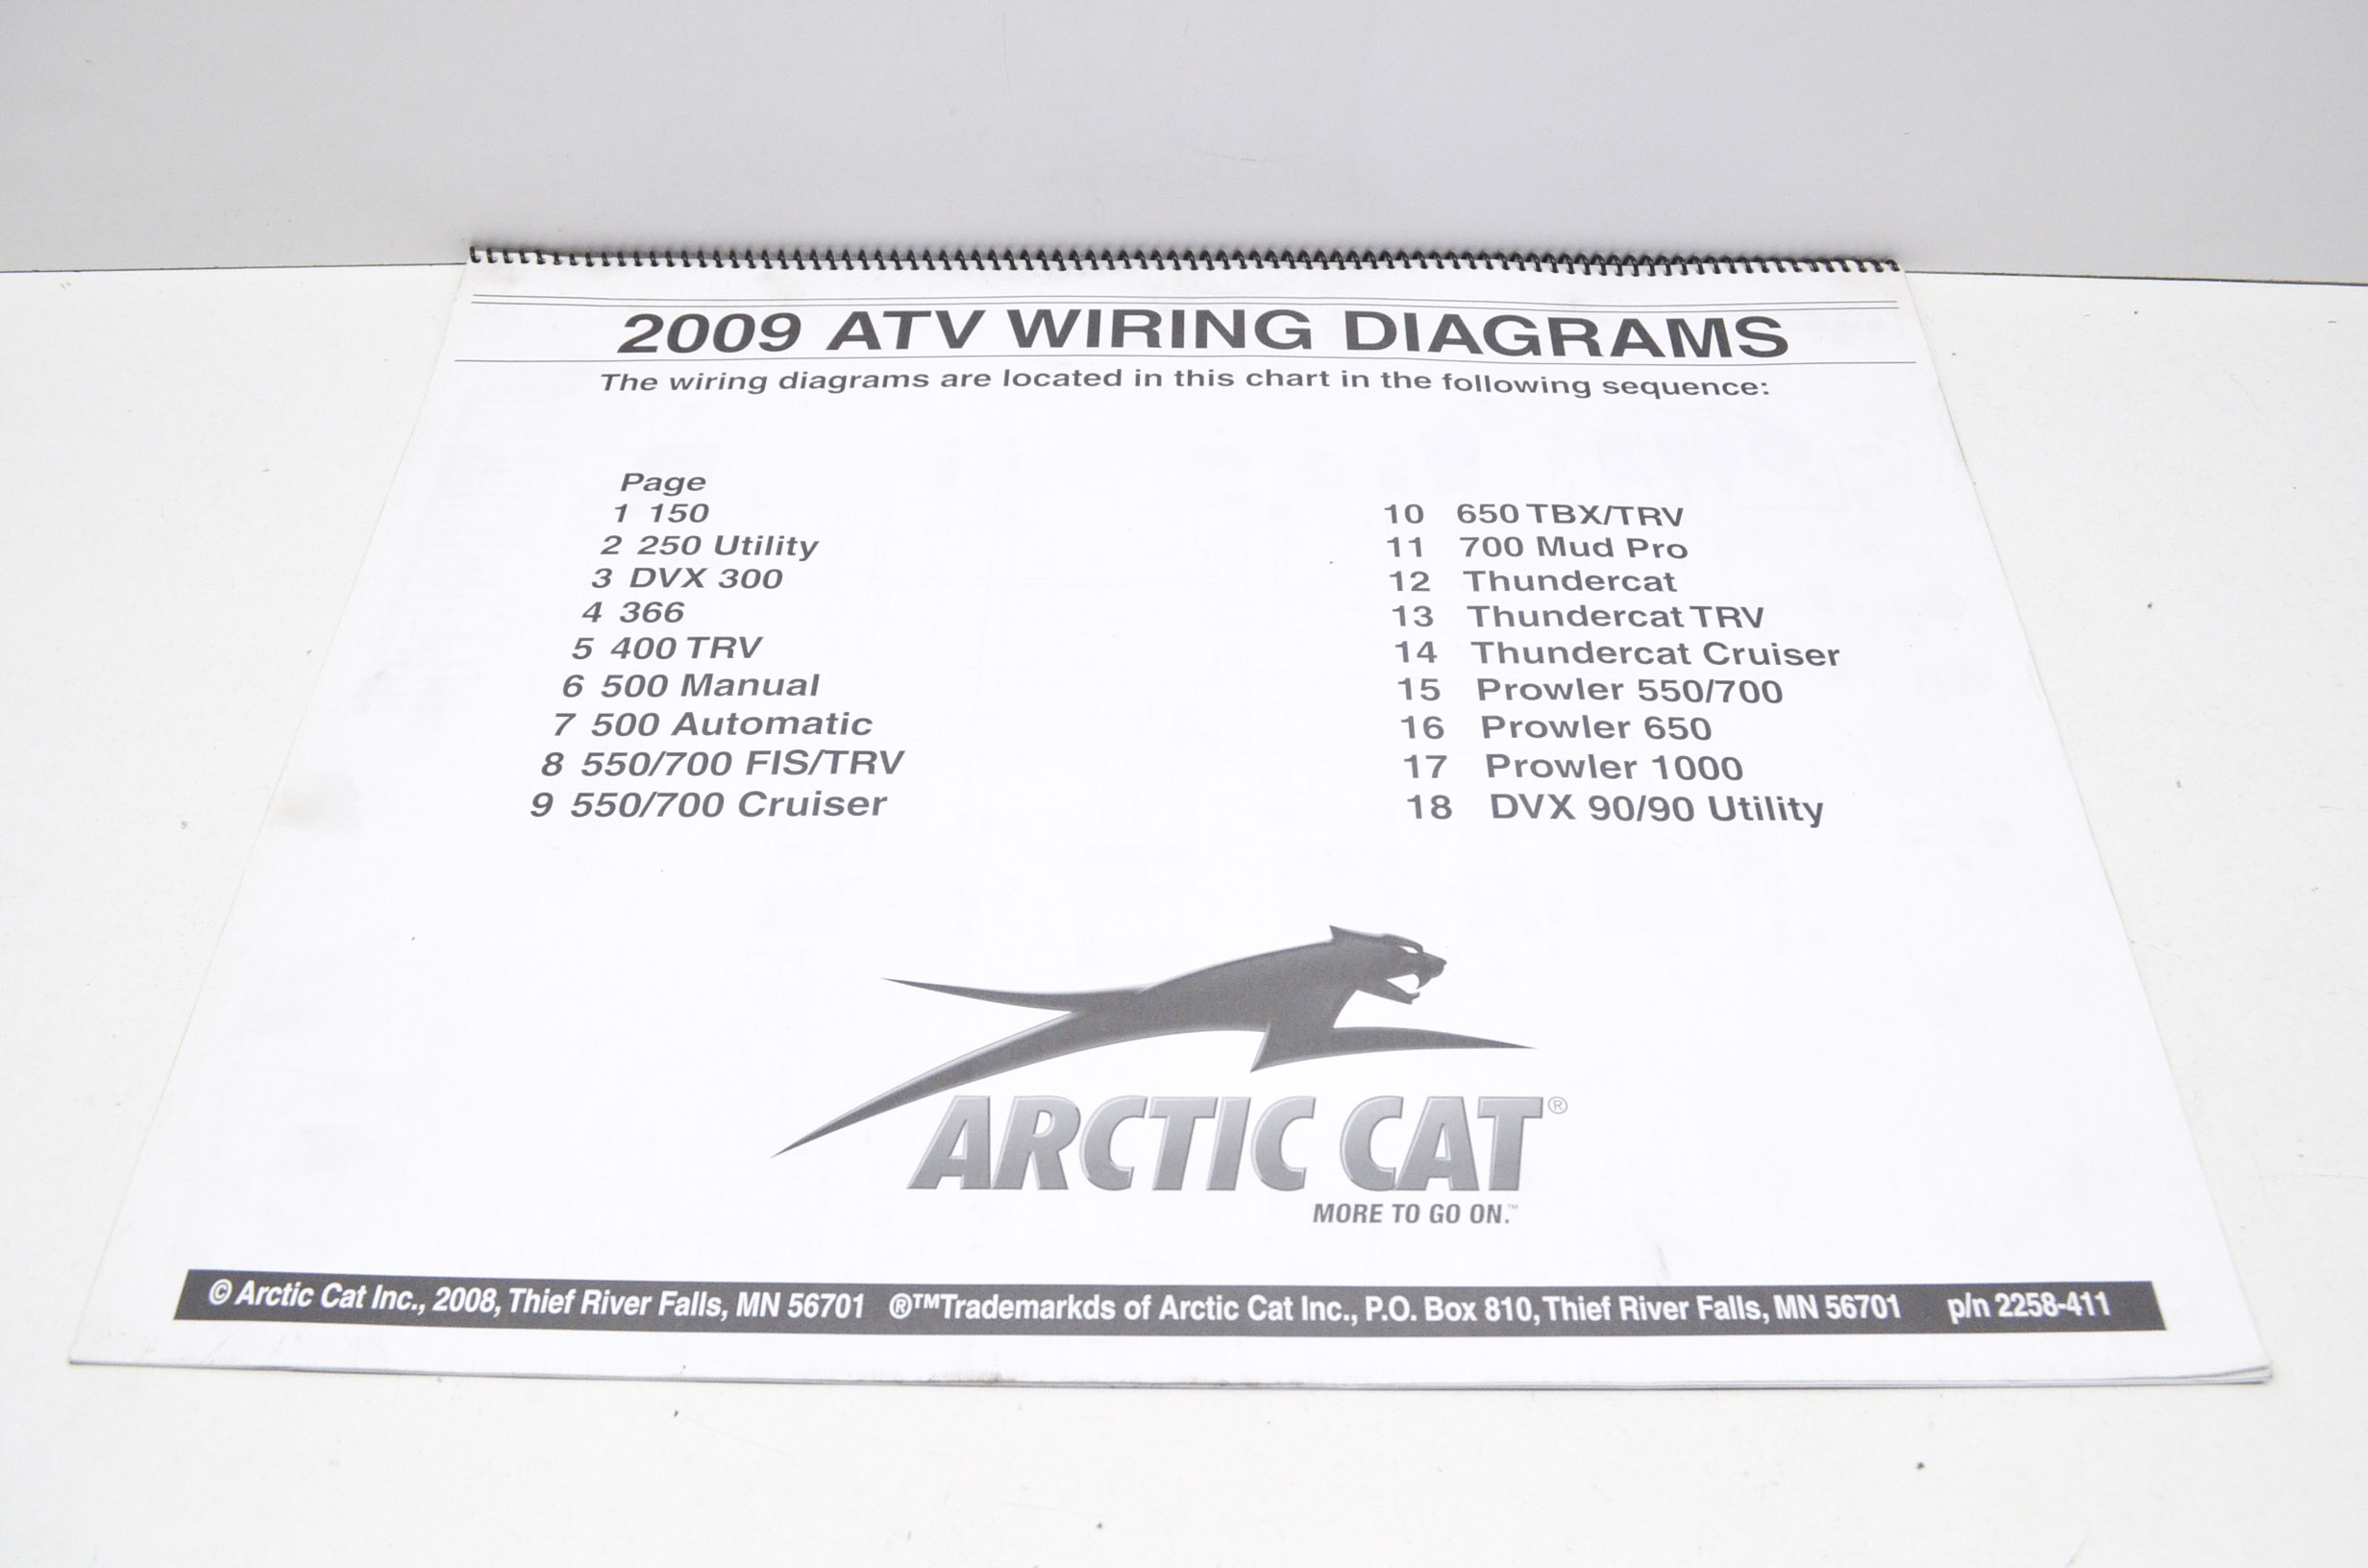 hight resolution of arctic cat 2258 411 2009 atv wiring diagrams qty 1 walmart com rh walmart com arctic cat wiring schematic arctic cat atv wiring schematics